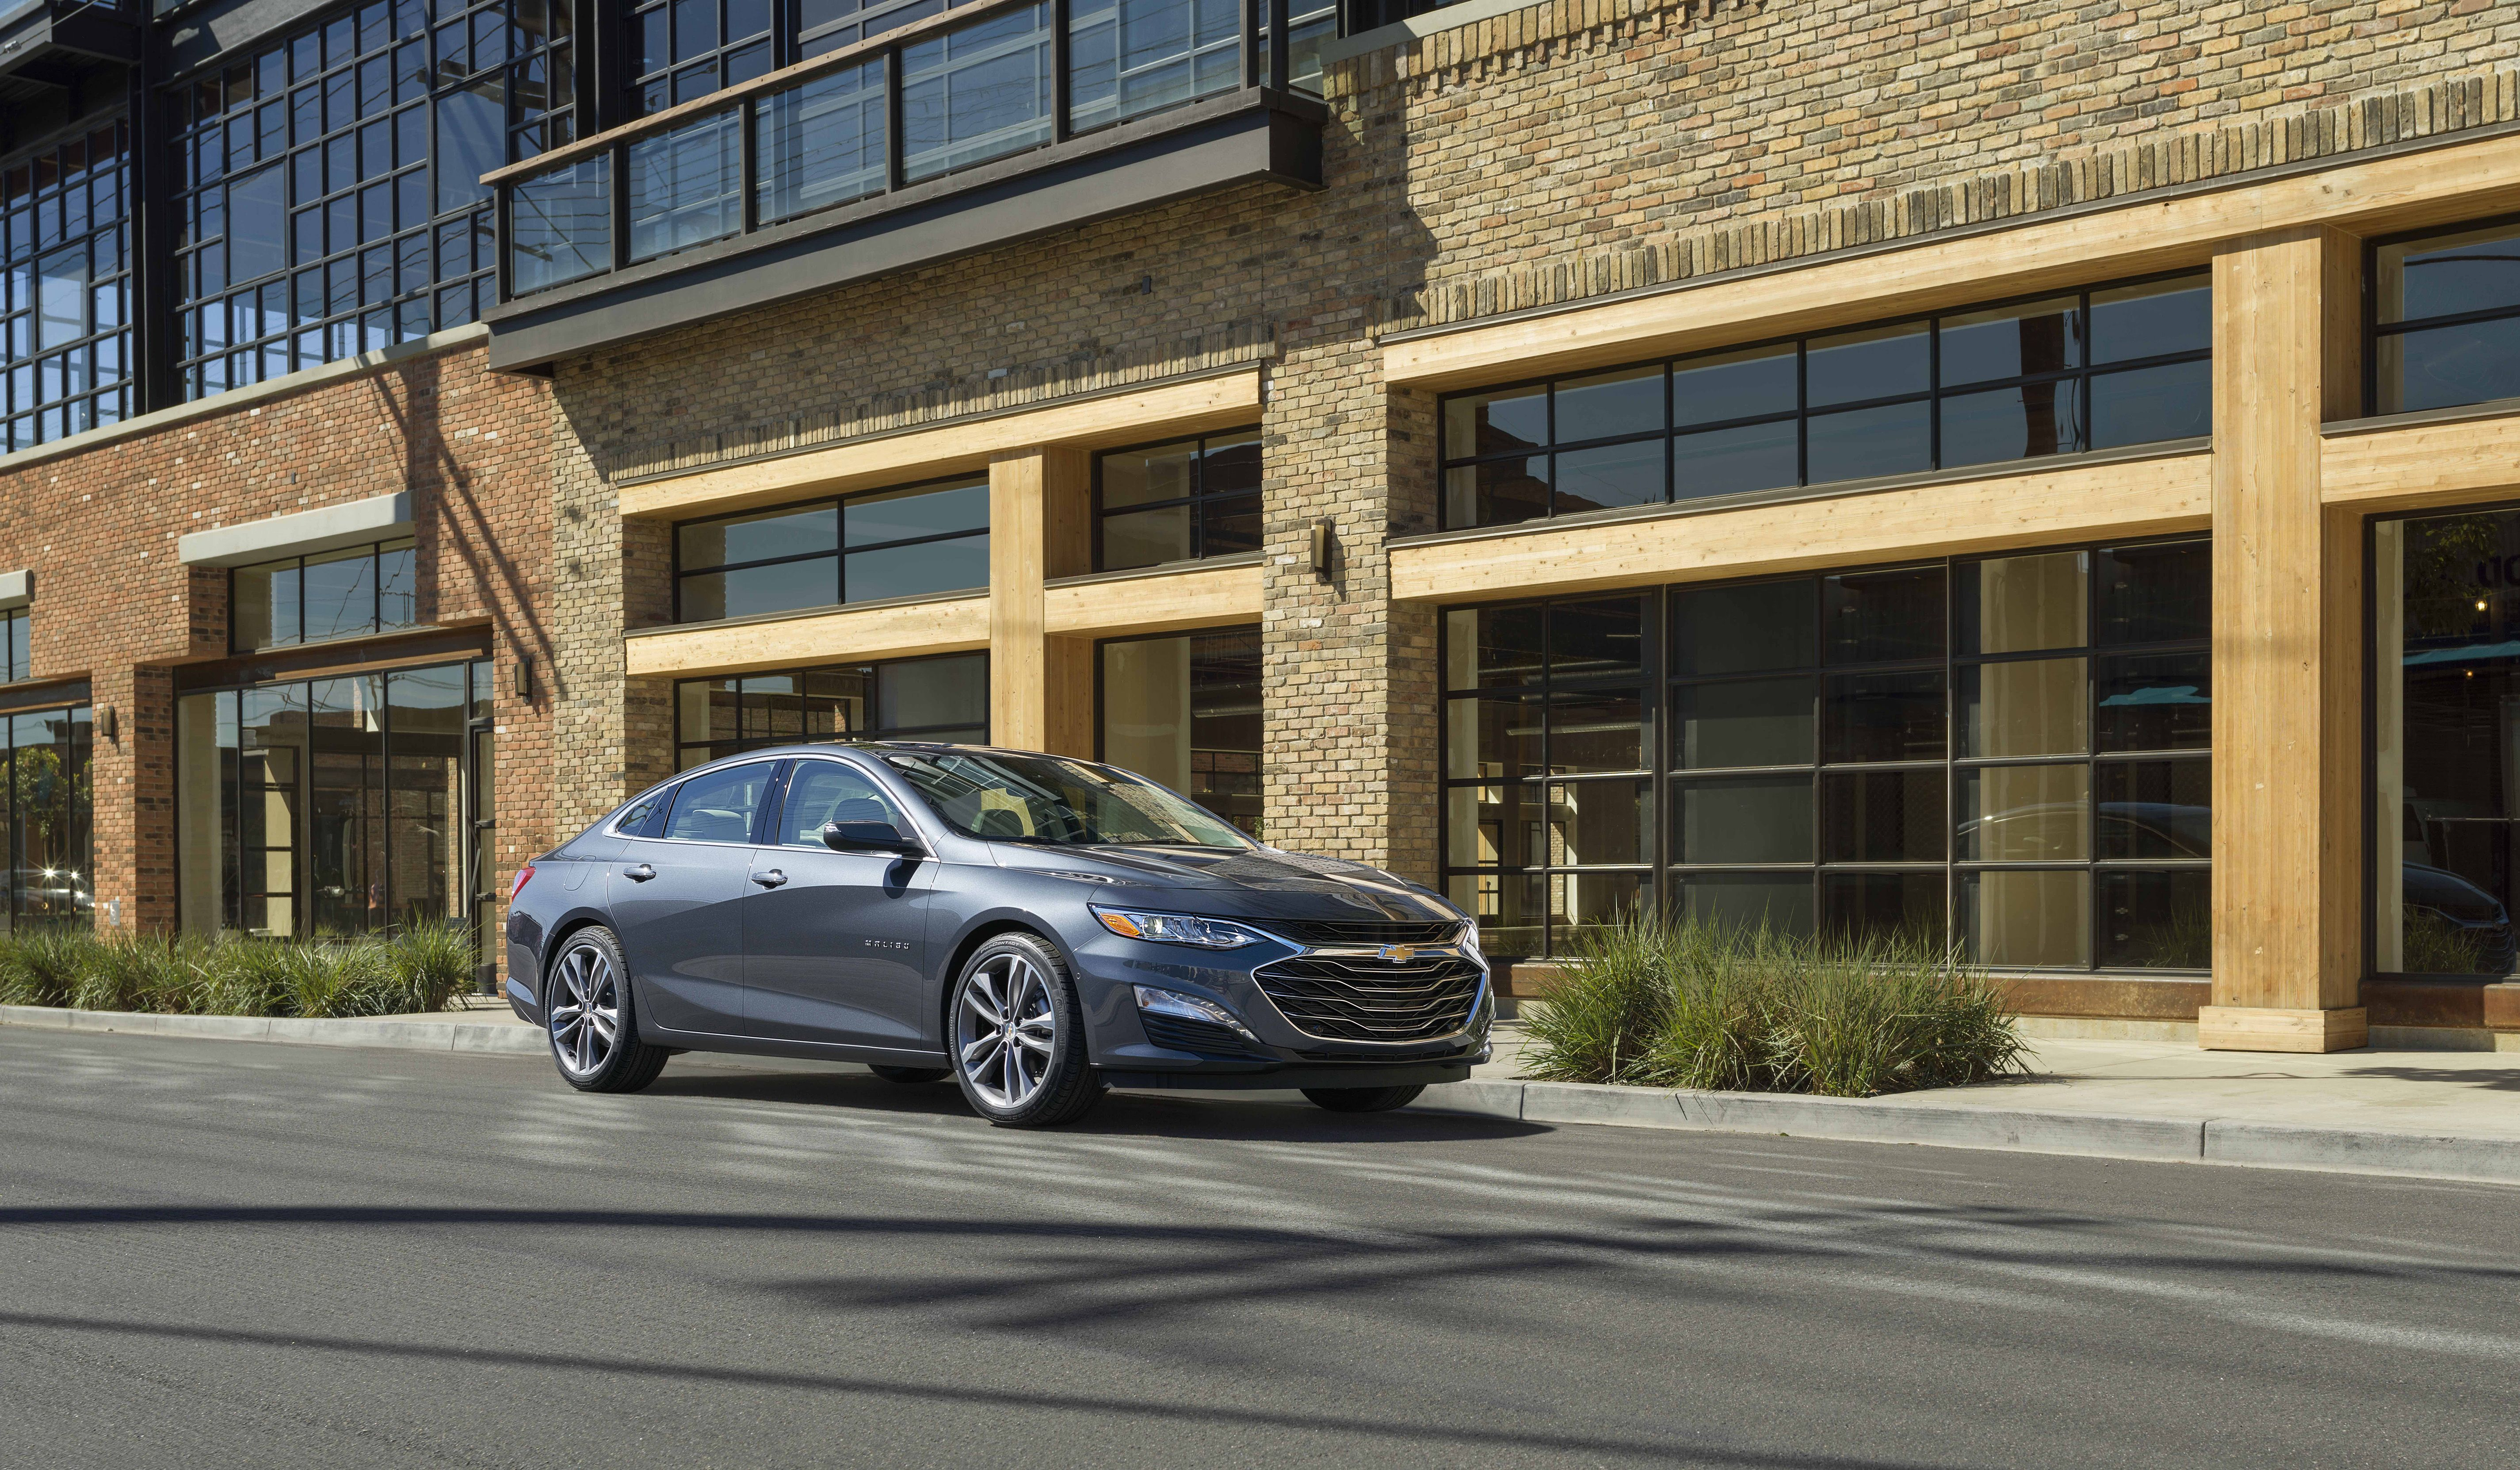 Chevy Malibu Mpg >> 2020 Chevrolet Malibu Review Pricing And Specs